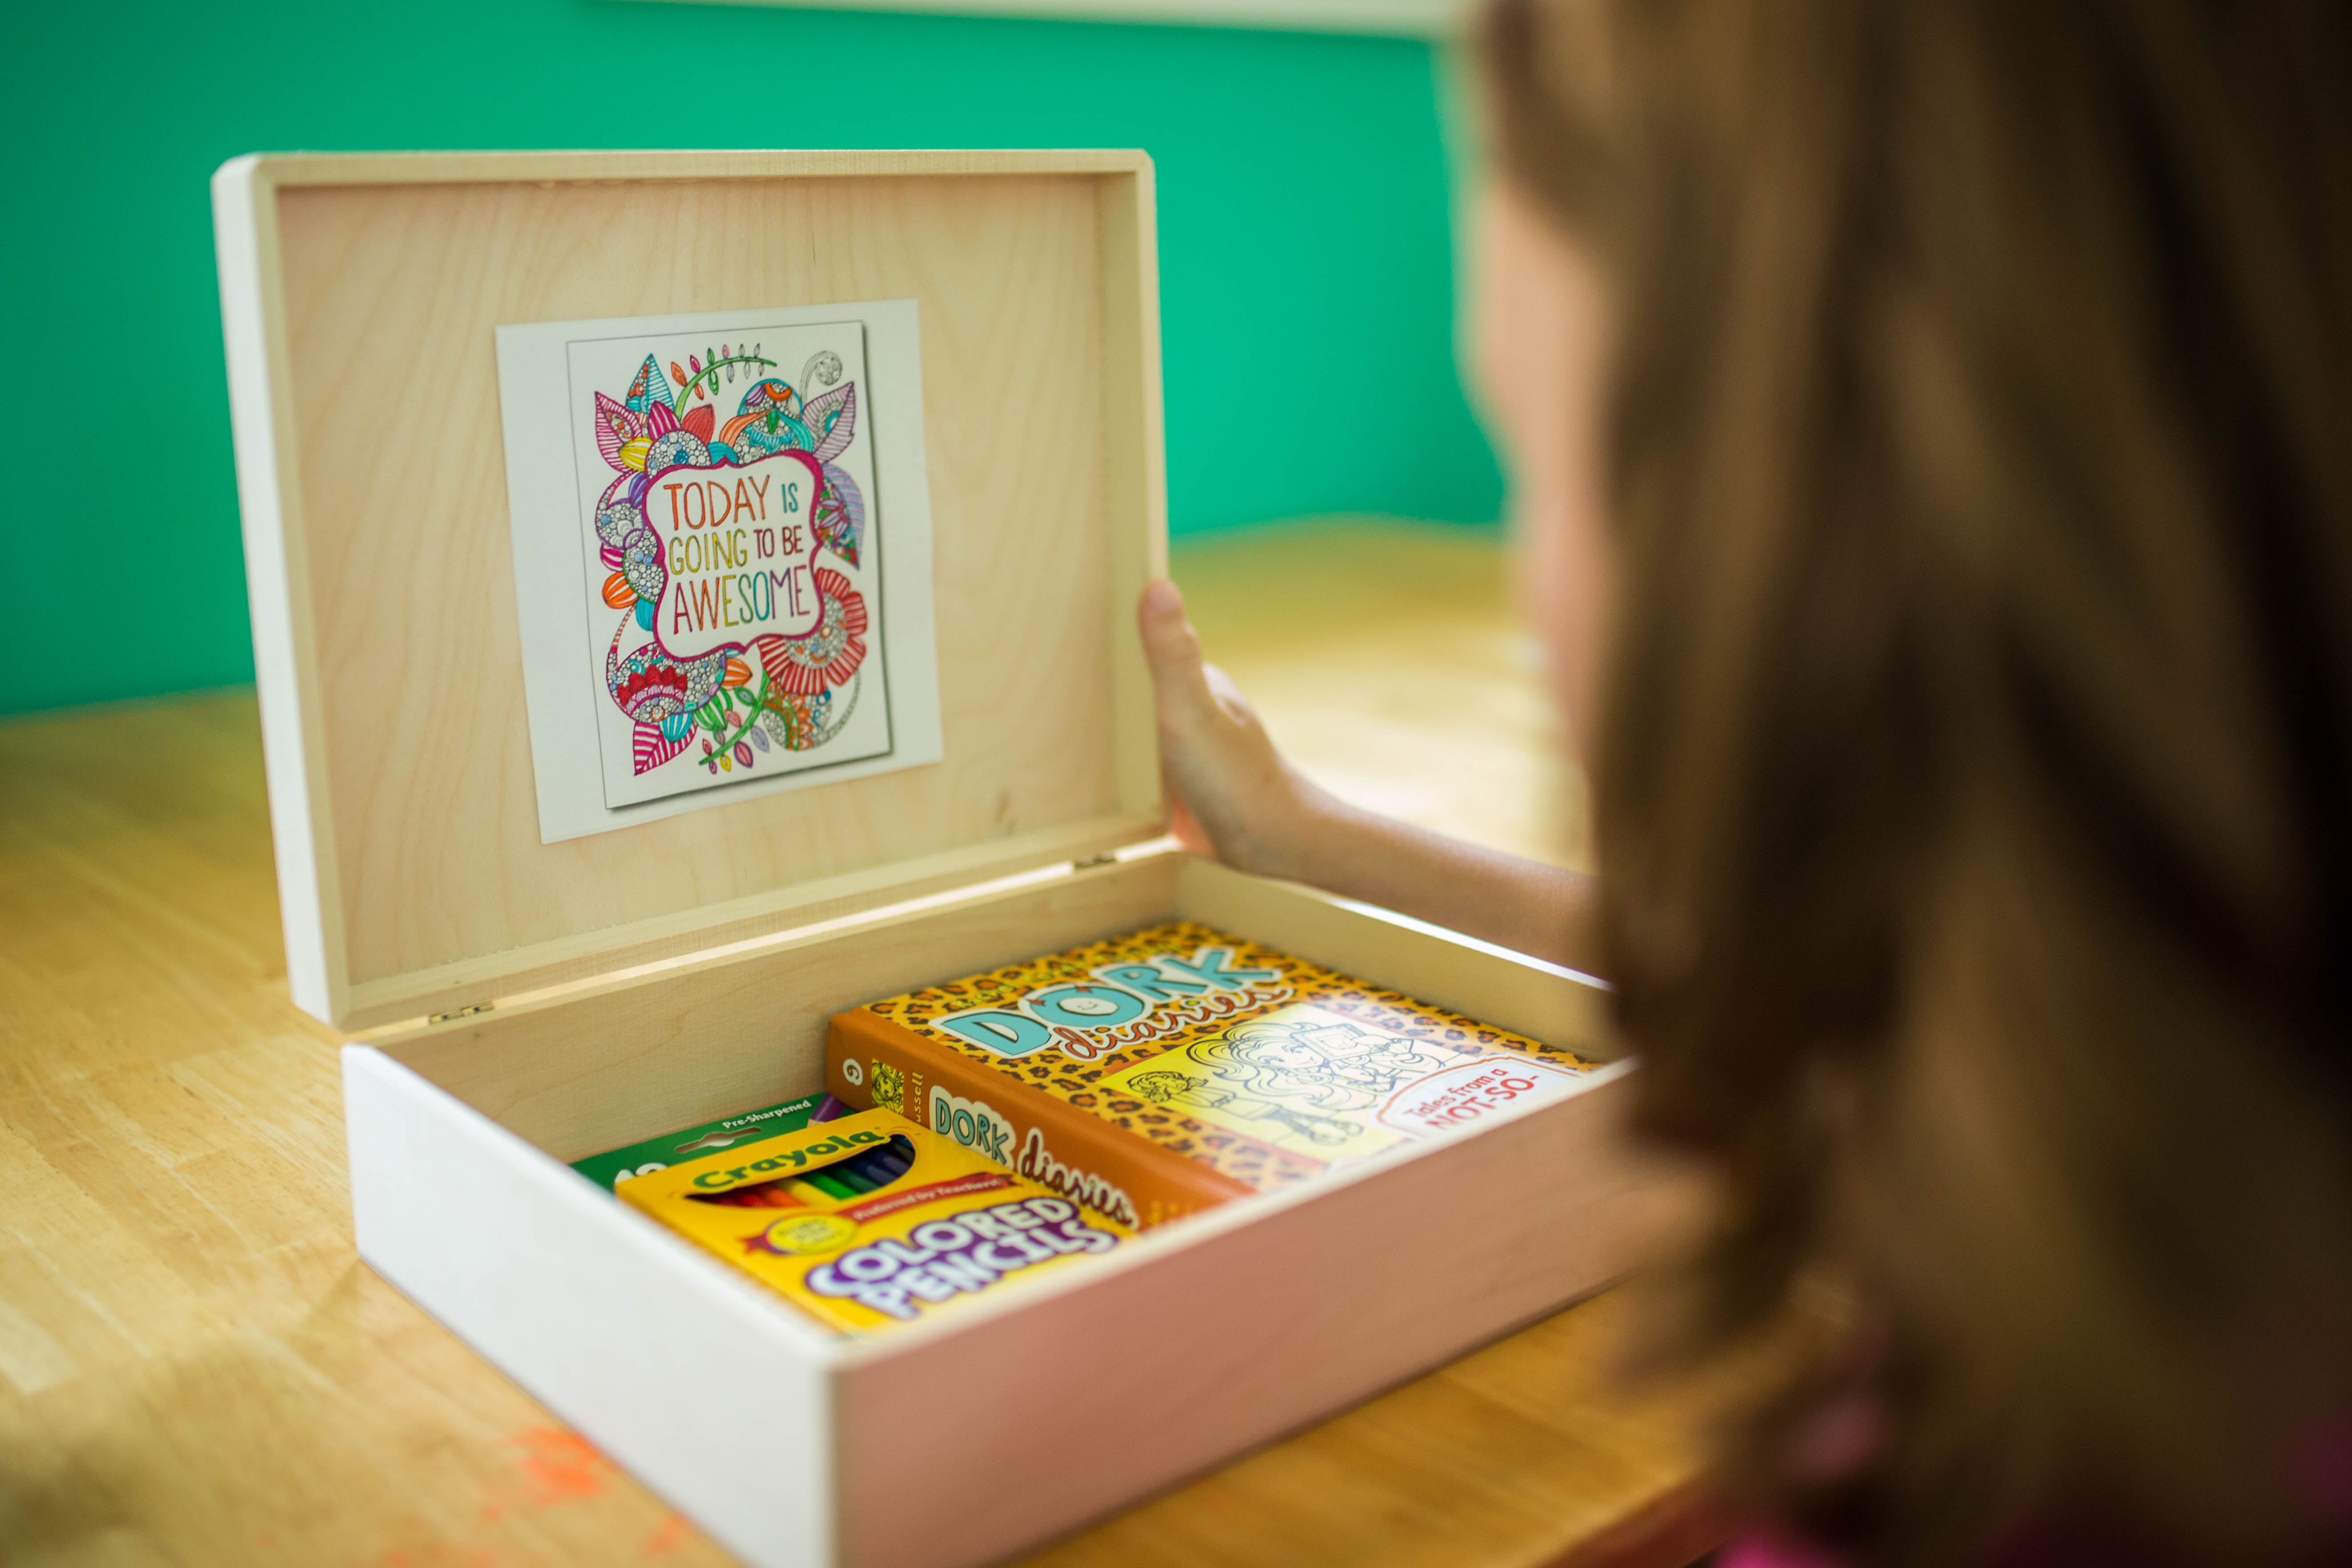 Kayla's coping box contains items like colouring pencils and books